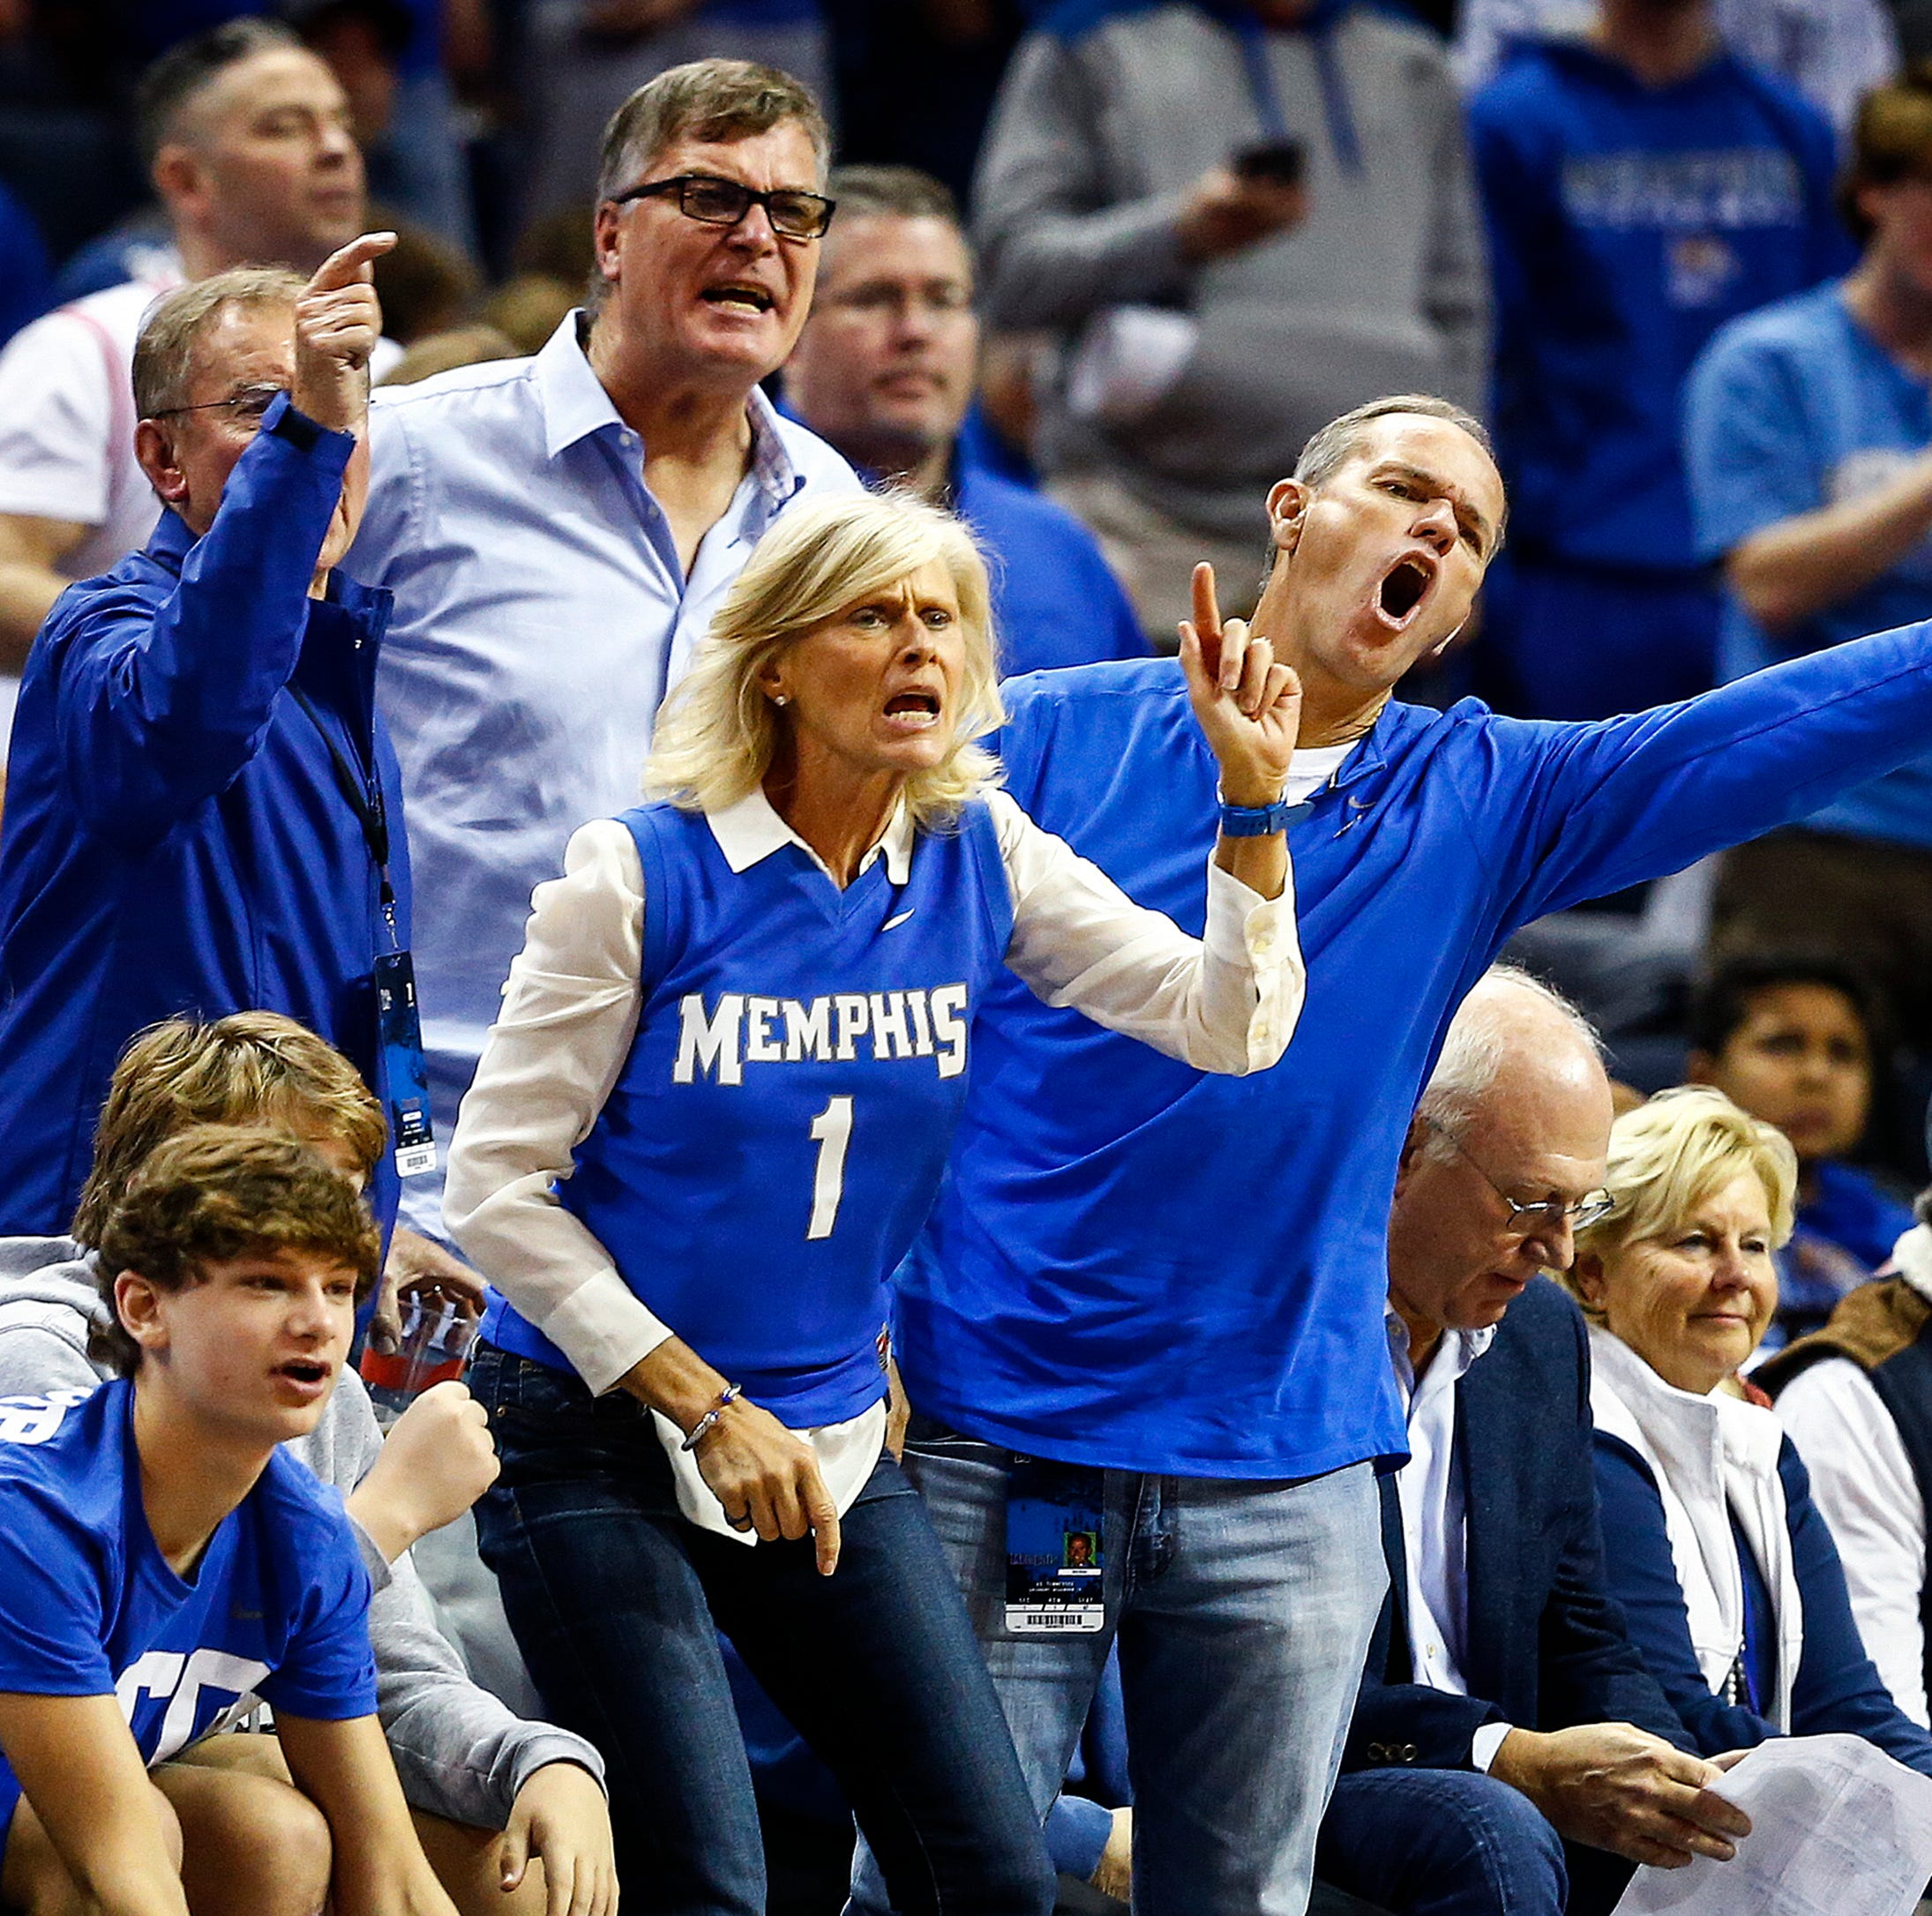 Memphis-UT didn't end the way Tigers fans wanted, but the roar (and the boos) returned to FedEx Forum